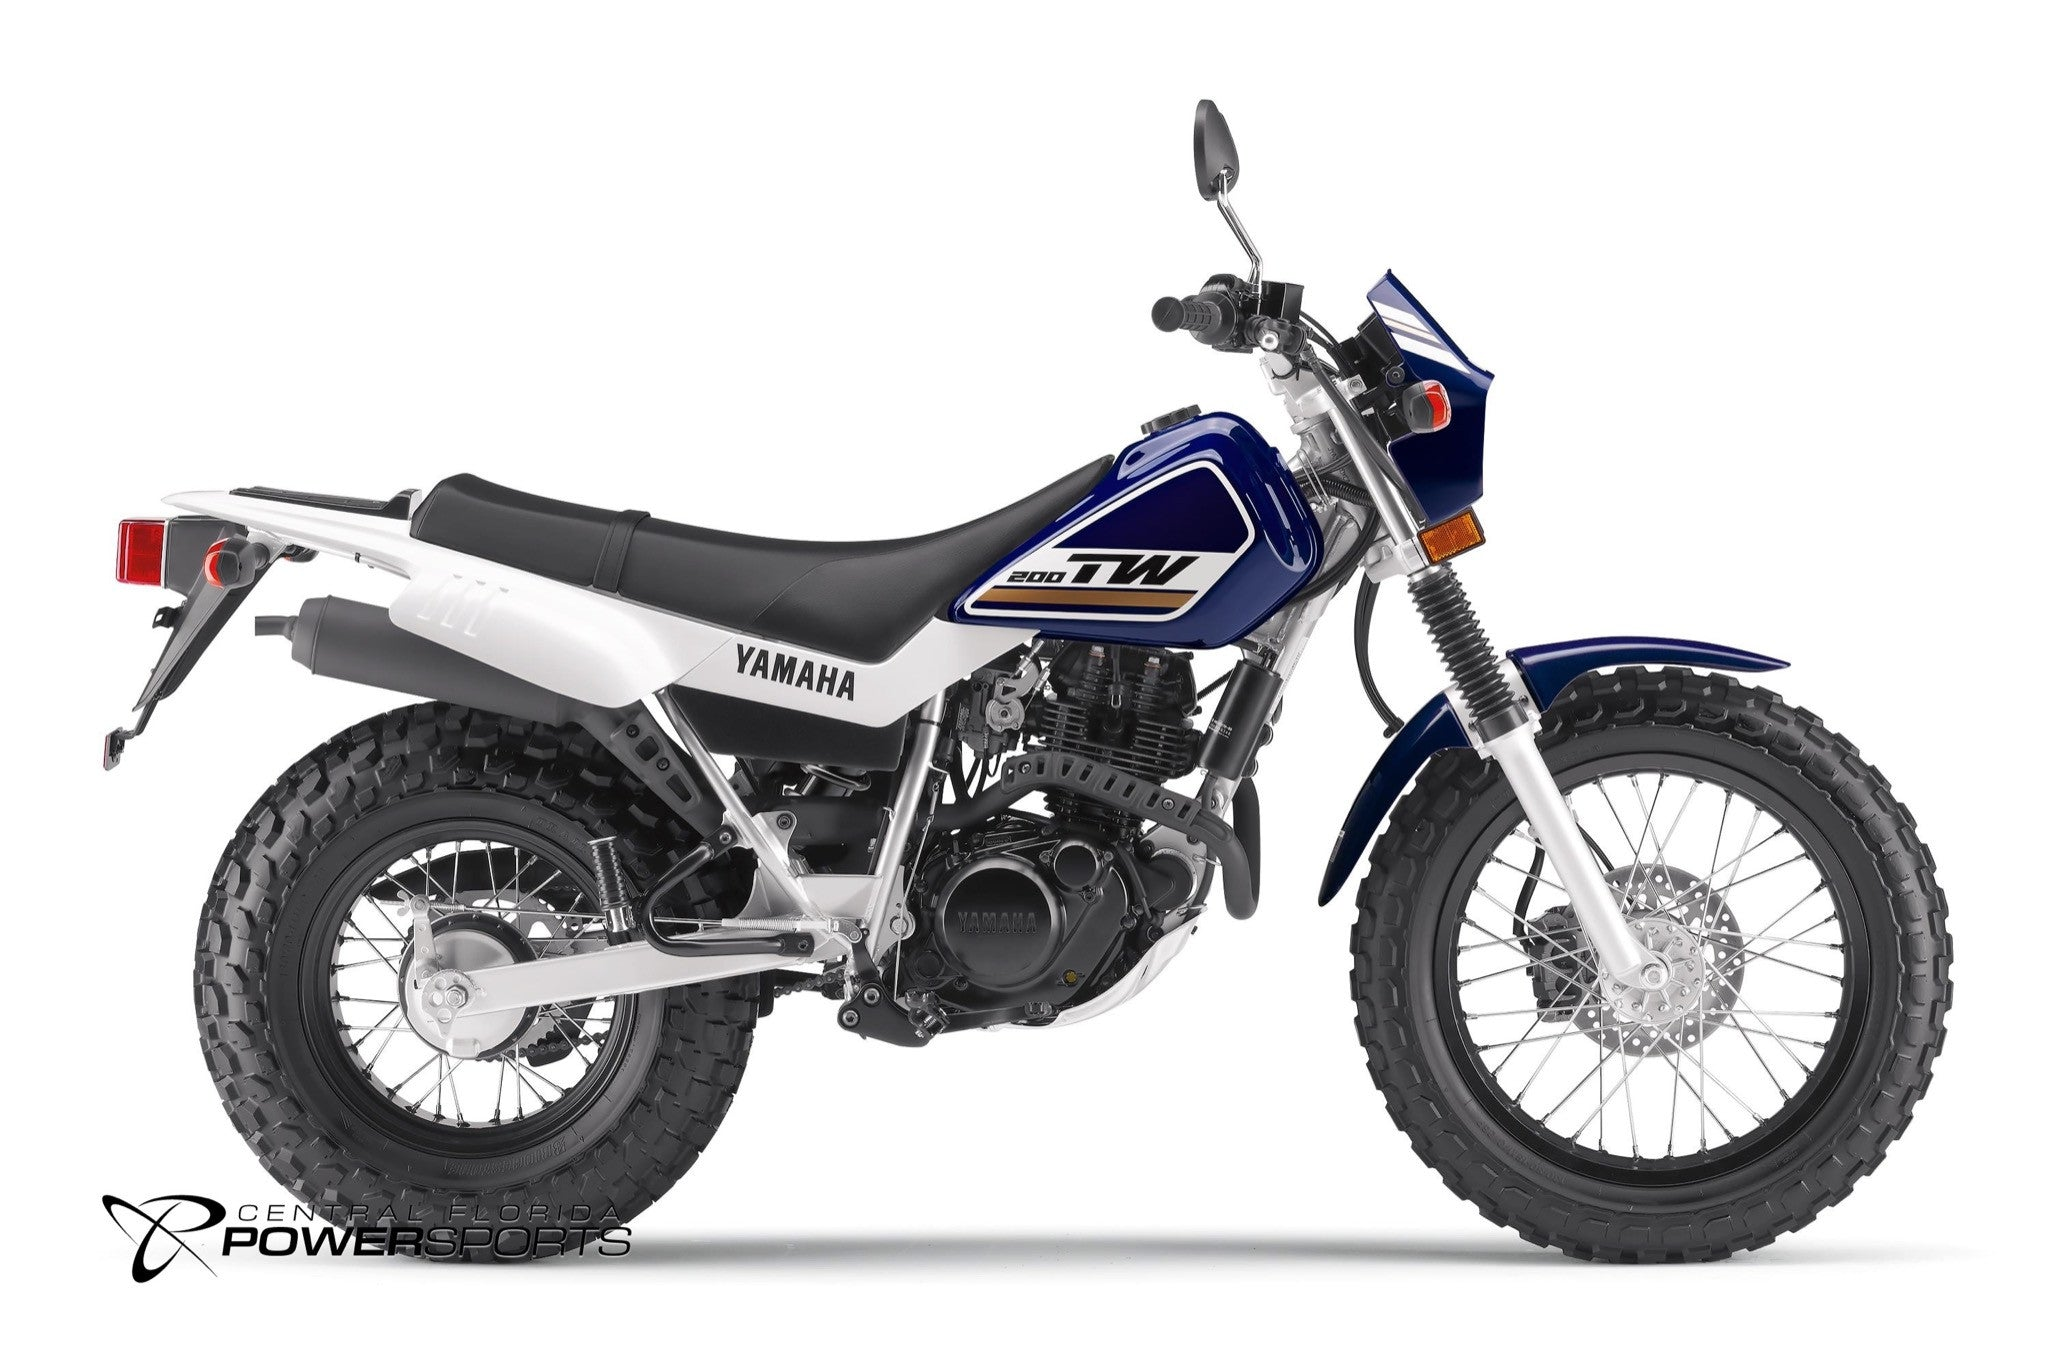 2017 Yamaha TW200 Kids Dual Sport Bike - Kissimmee - Youth Bike ...